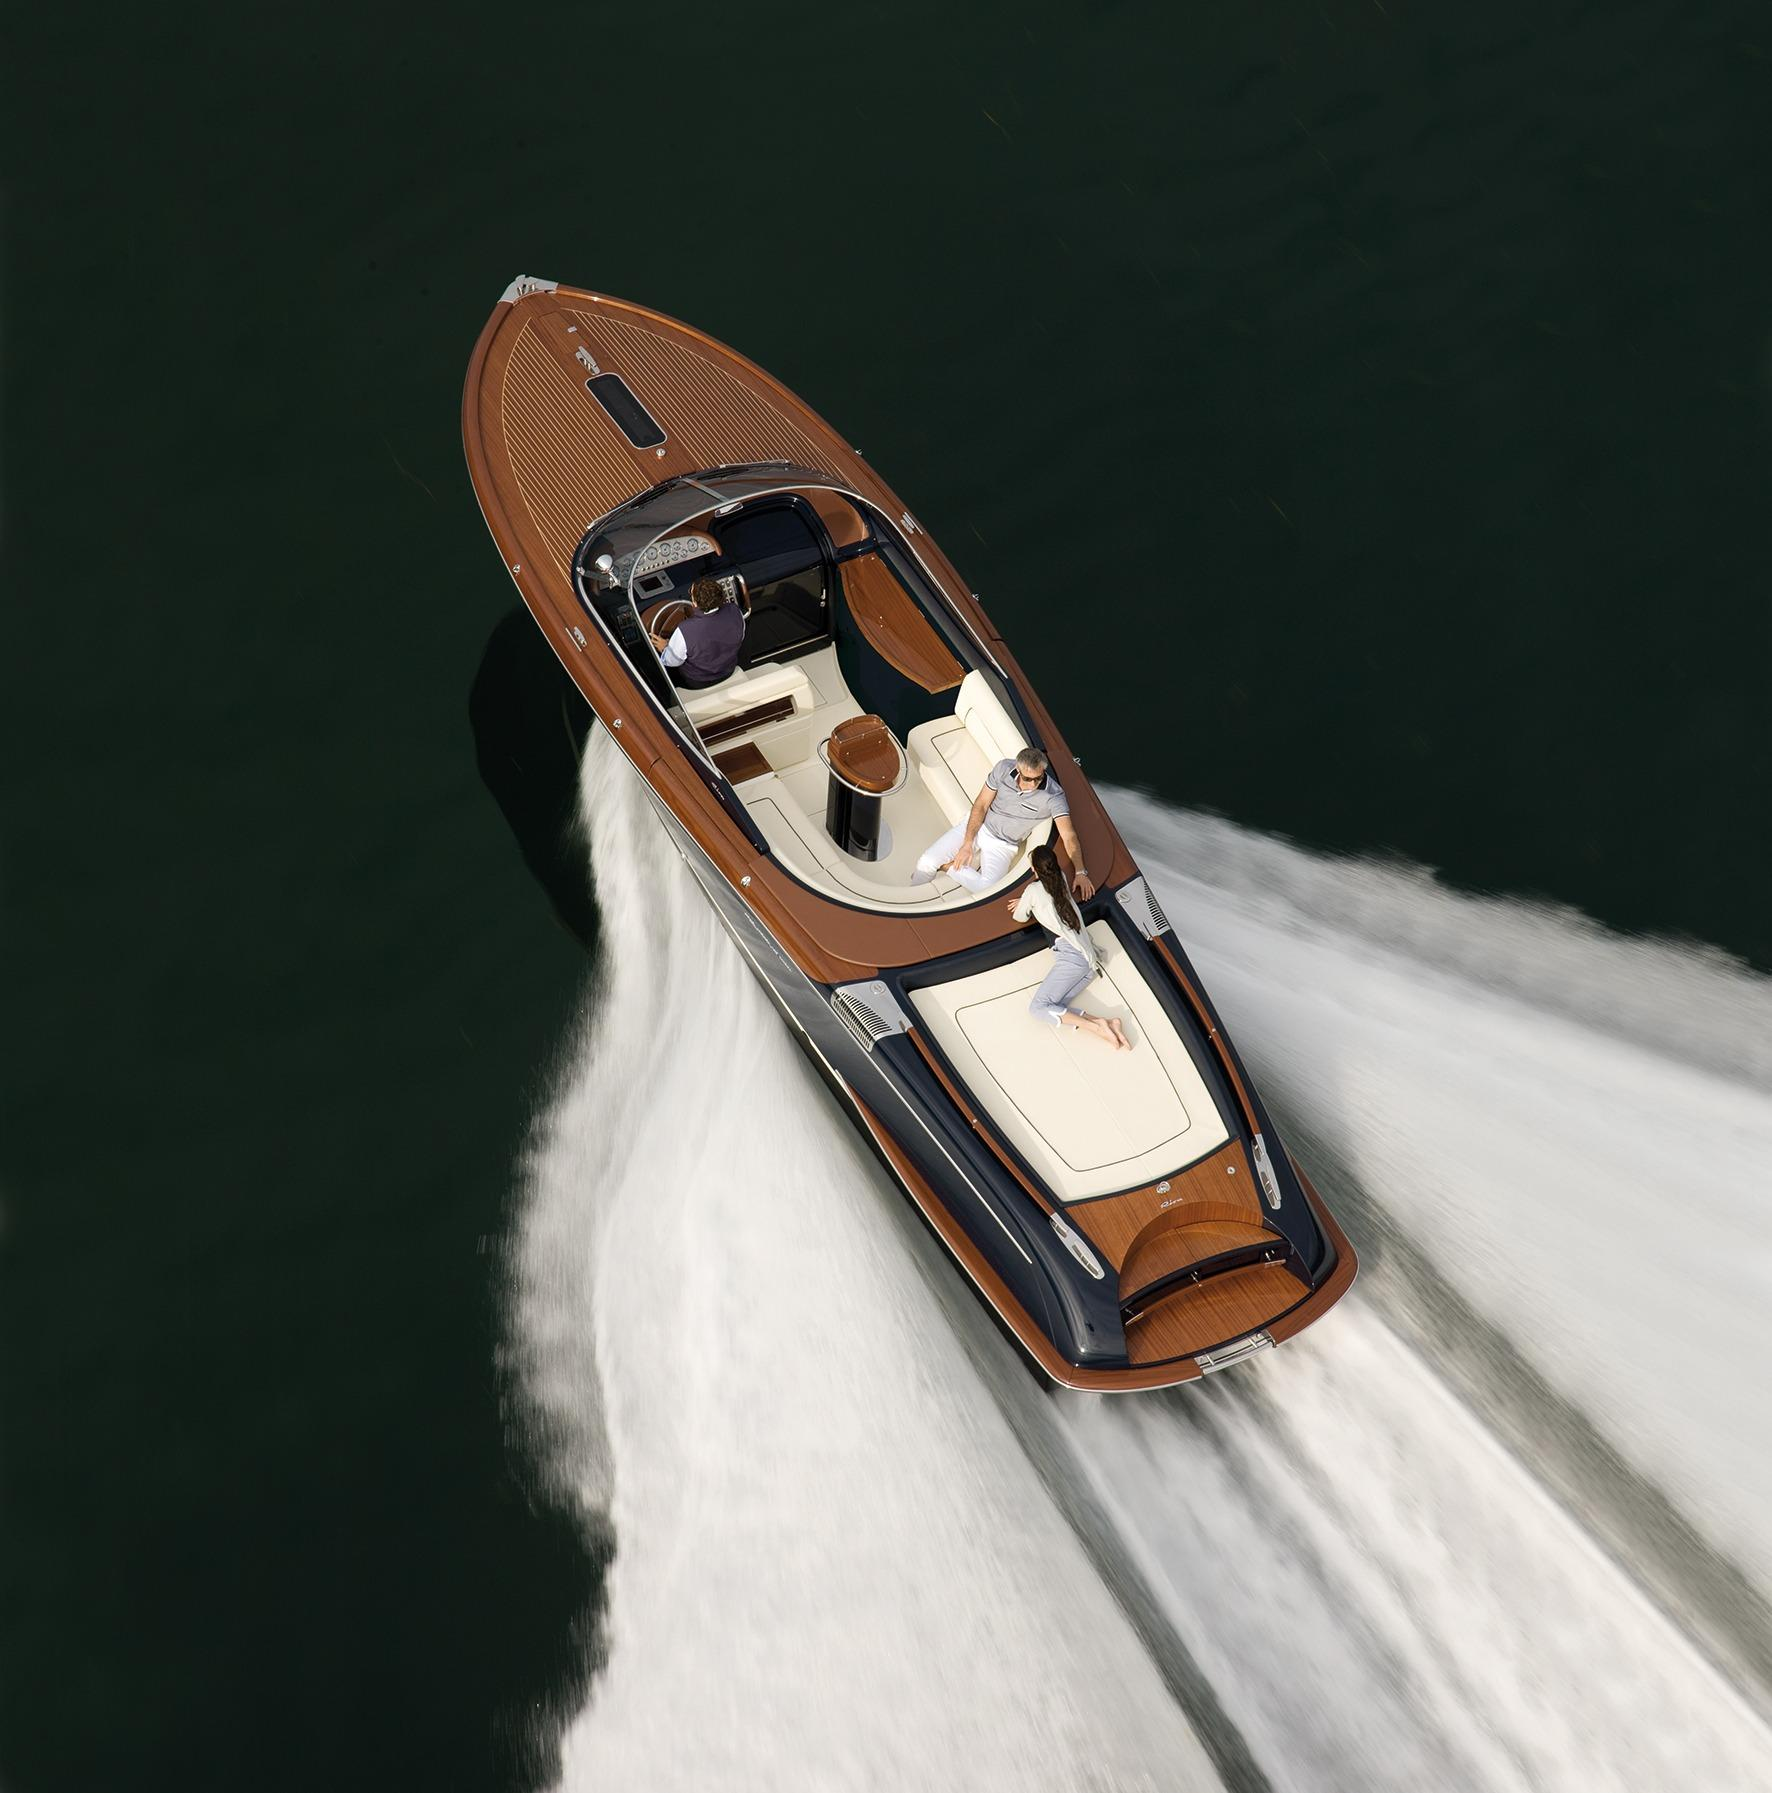 Manufacturer Provided Image: Riva Aquariva Super Aerial View